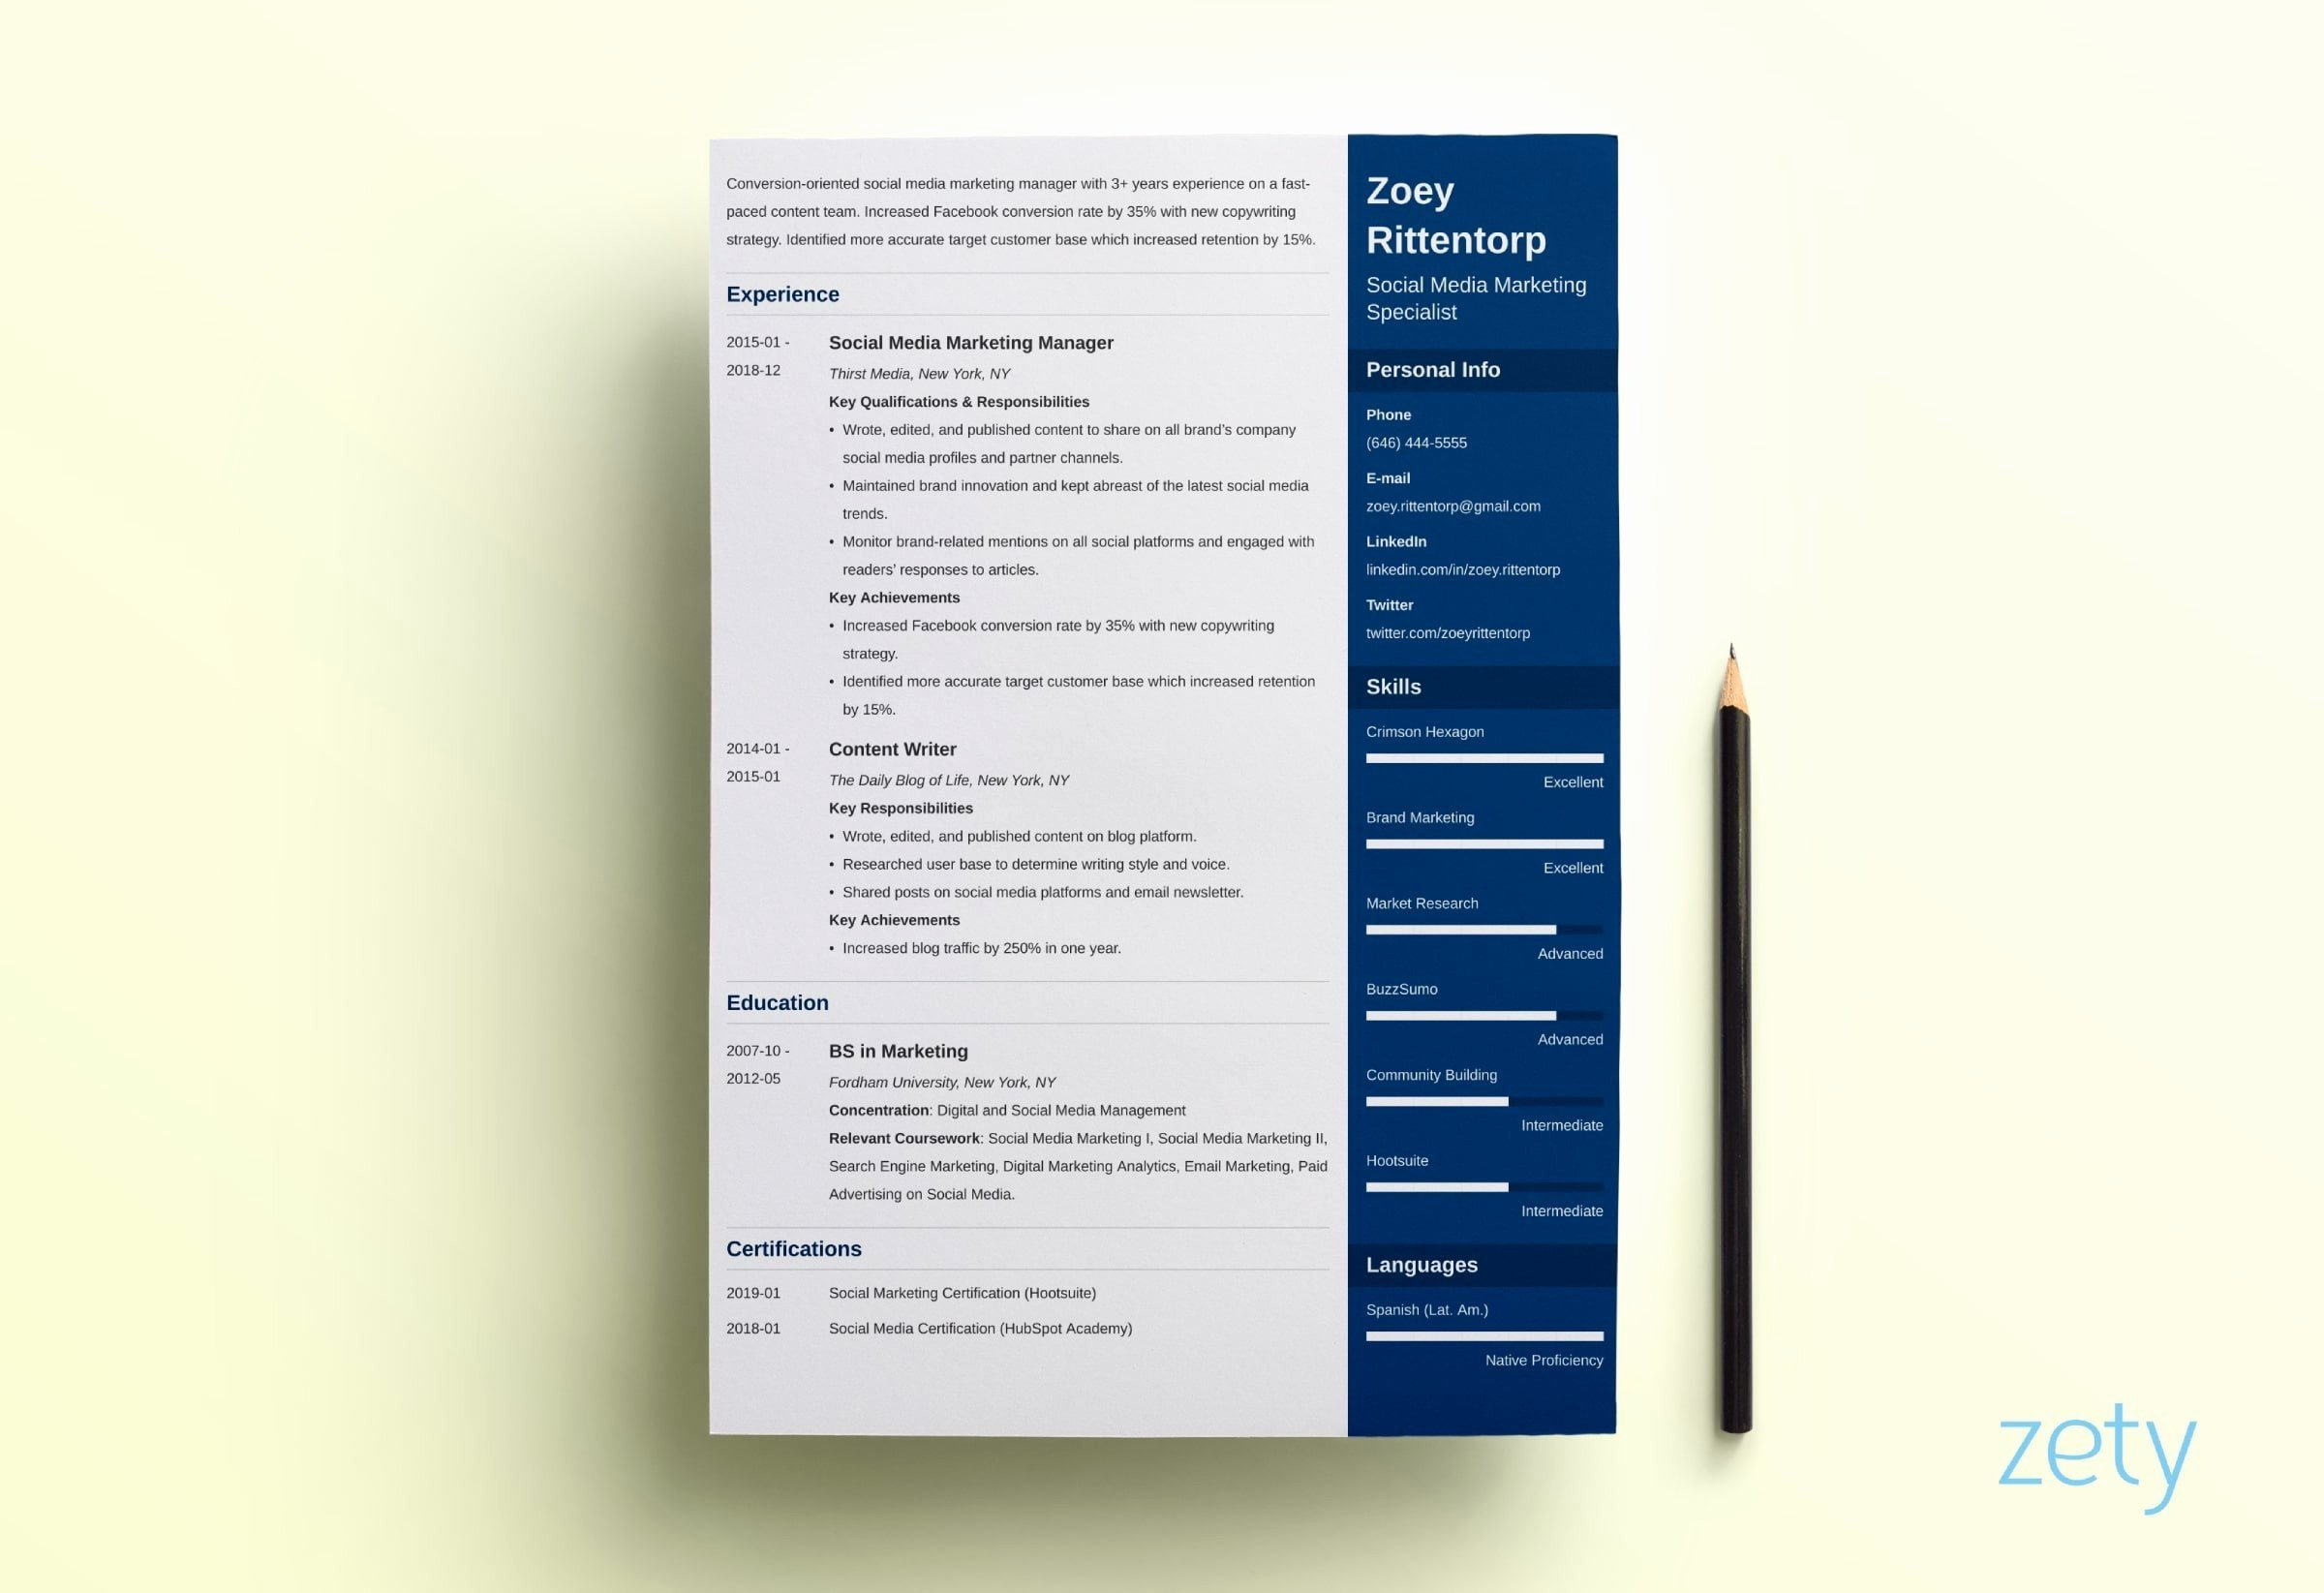 One Page Resume Examples Lovely E Page Resume Templates 15 Examples to Download and Use now